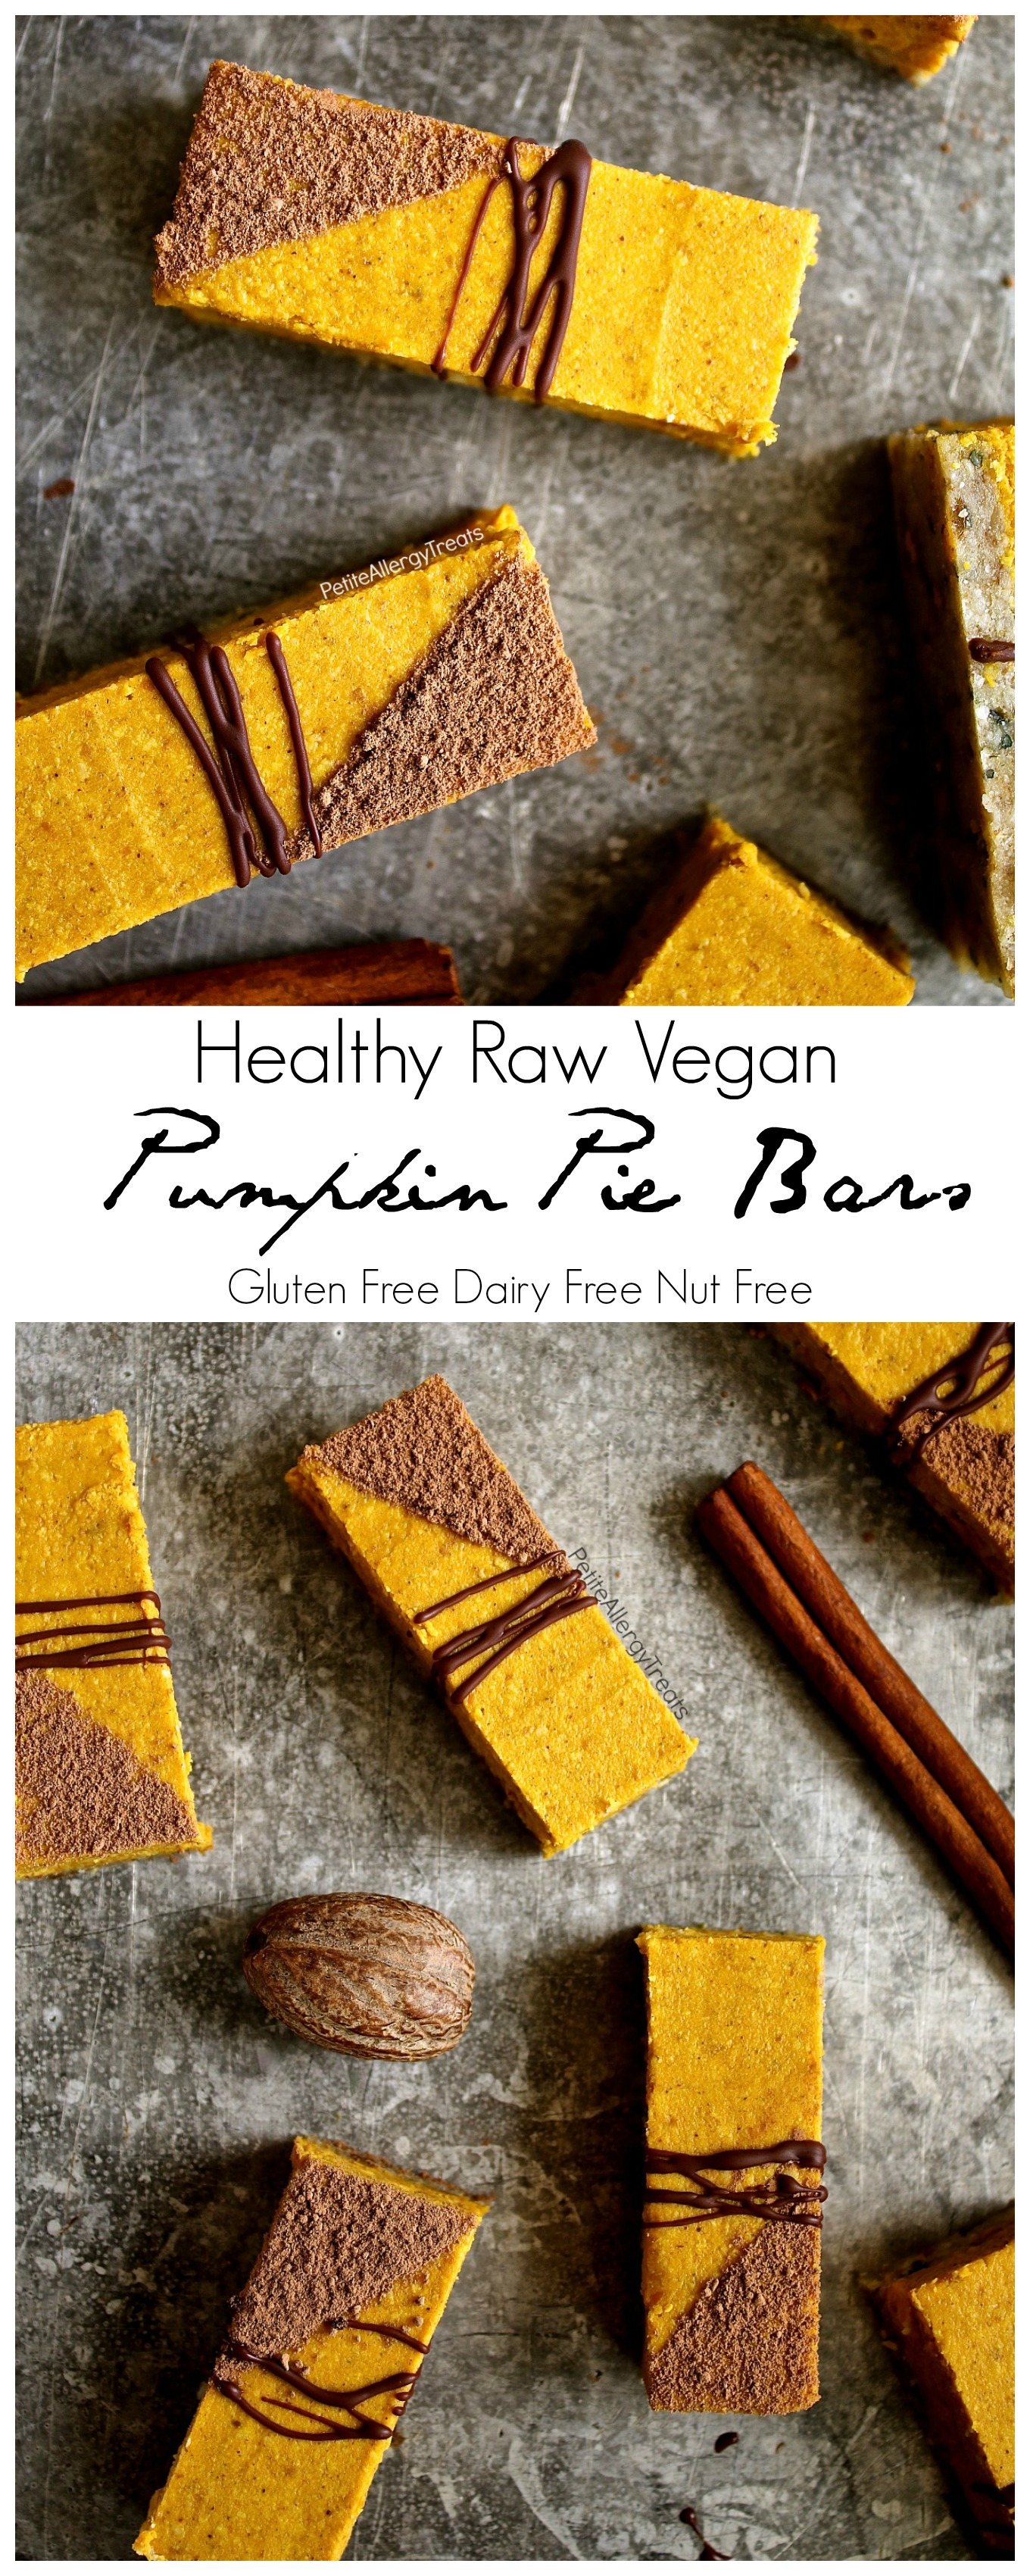 Healthy Raw Gluten Free Pumpkin Pie Bars Recipe (Vegan dairy free nut free)- No bake raw bars filled with real pumpkin, coconut butter, dates and hemp seeds. Refined sugar free. Food Allergy Friendly